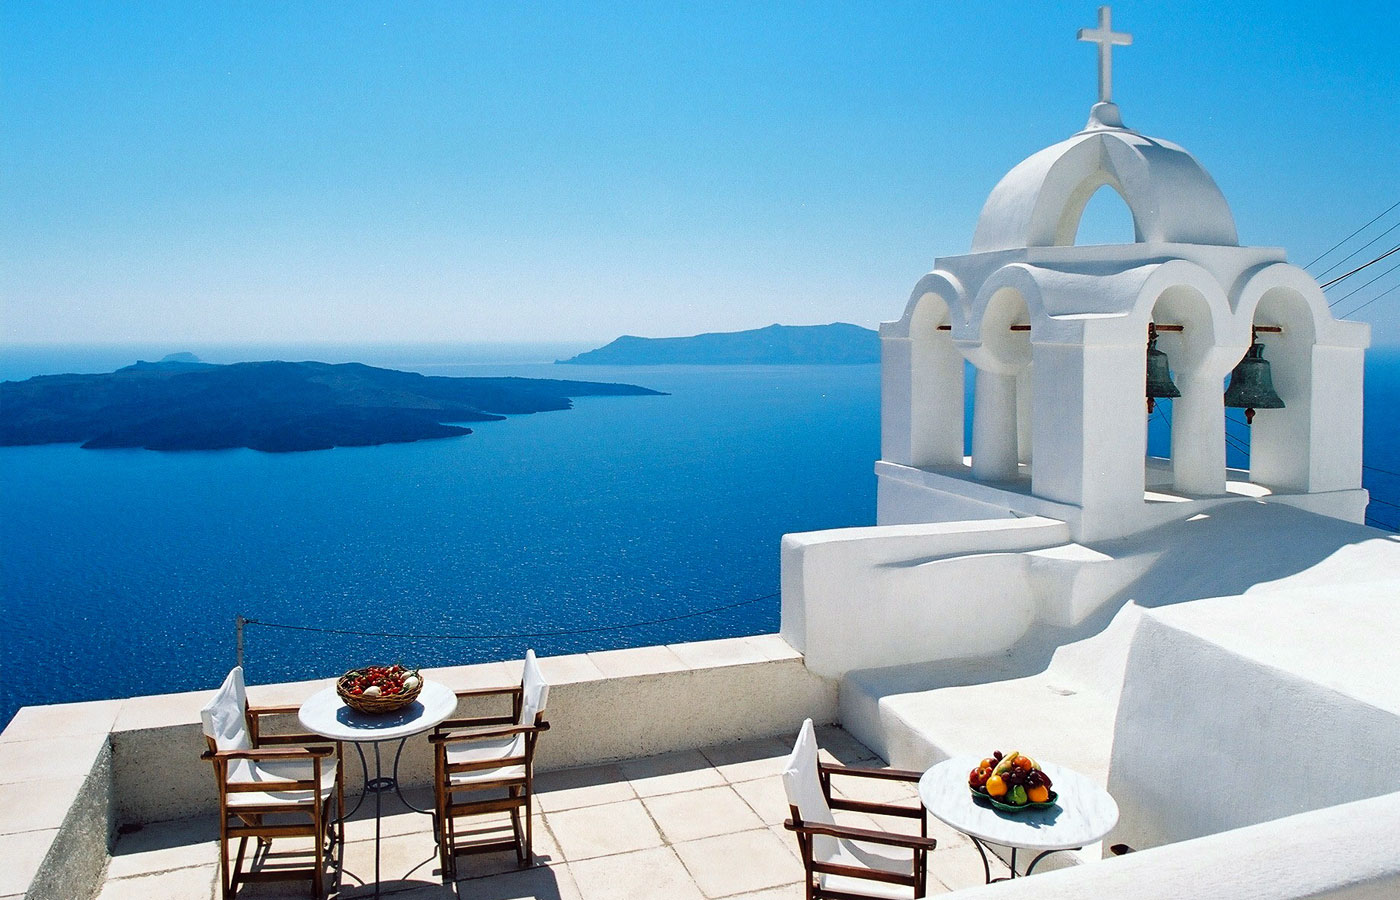 Santorini outdoor living, white buildings in front of blue sky